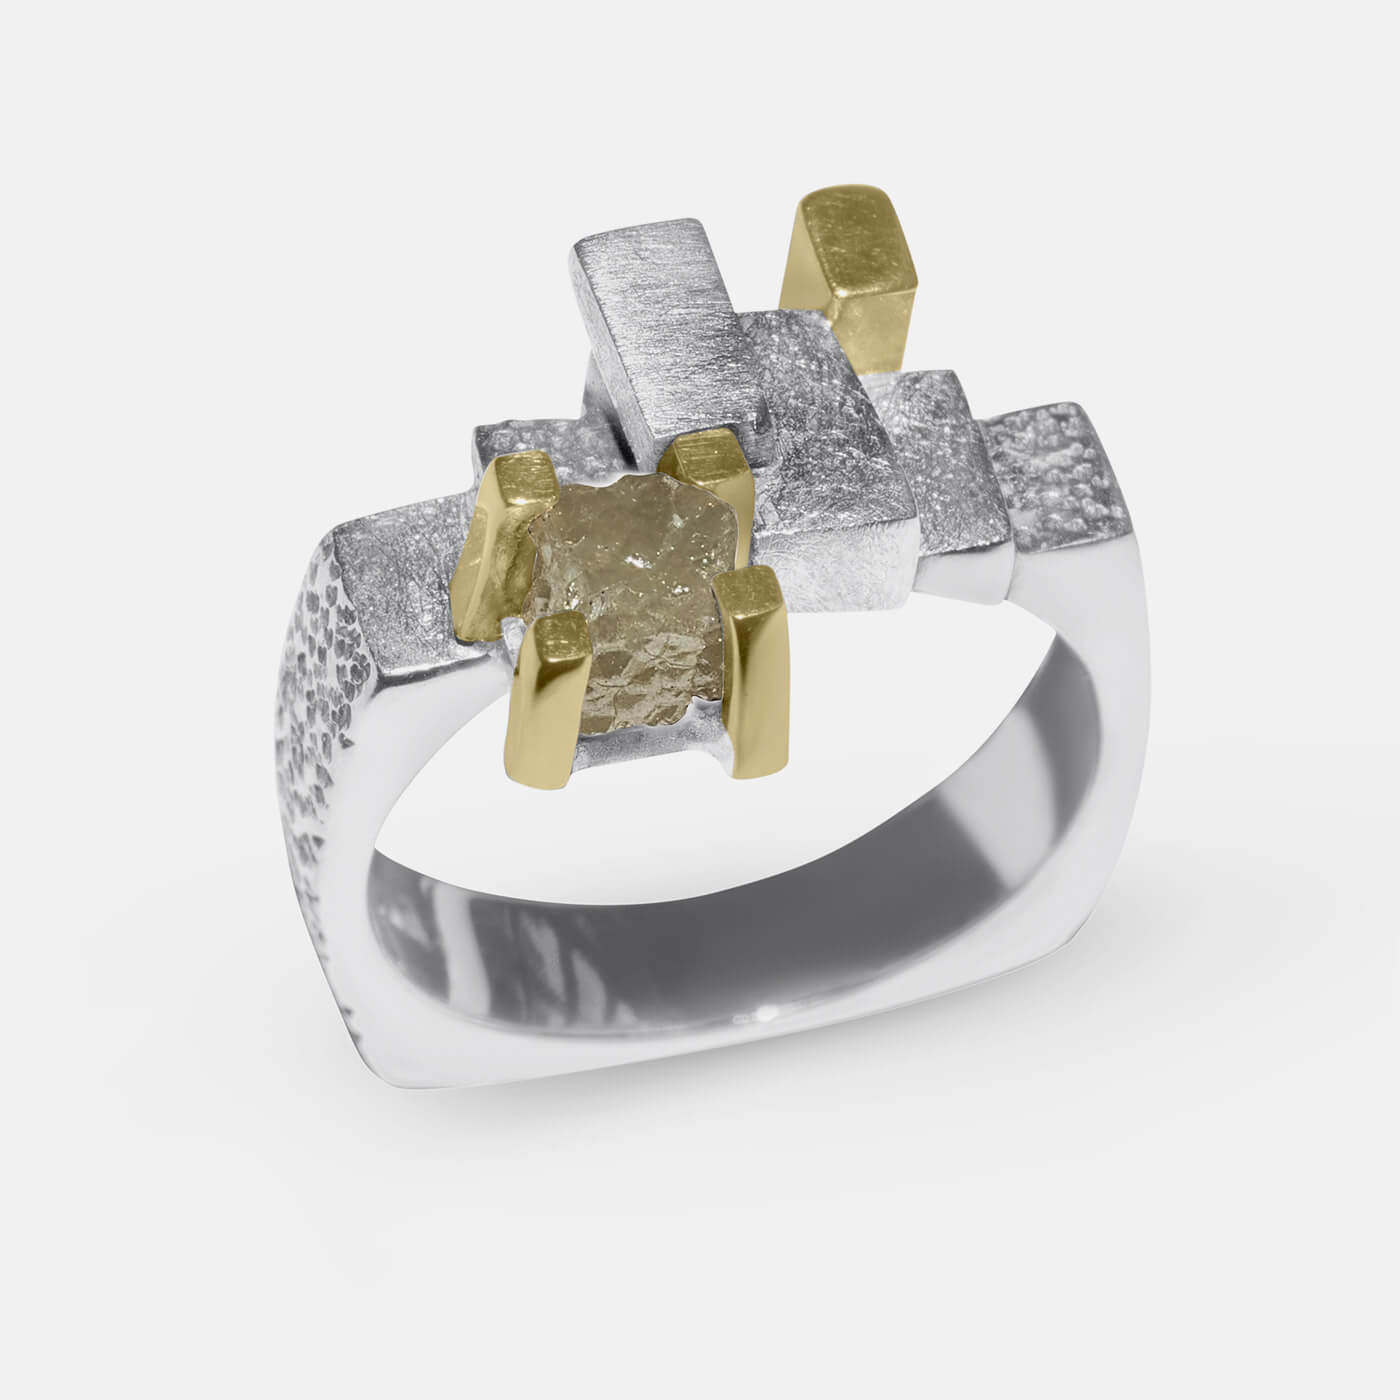 The Rough Diamond Dress Ring